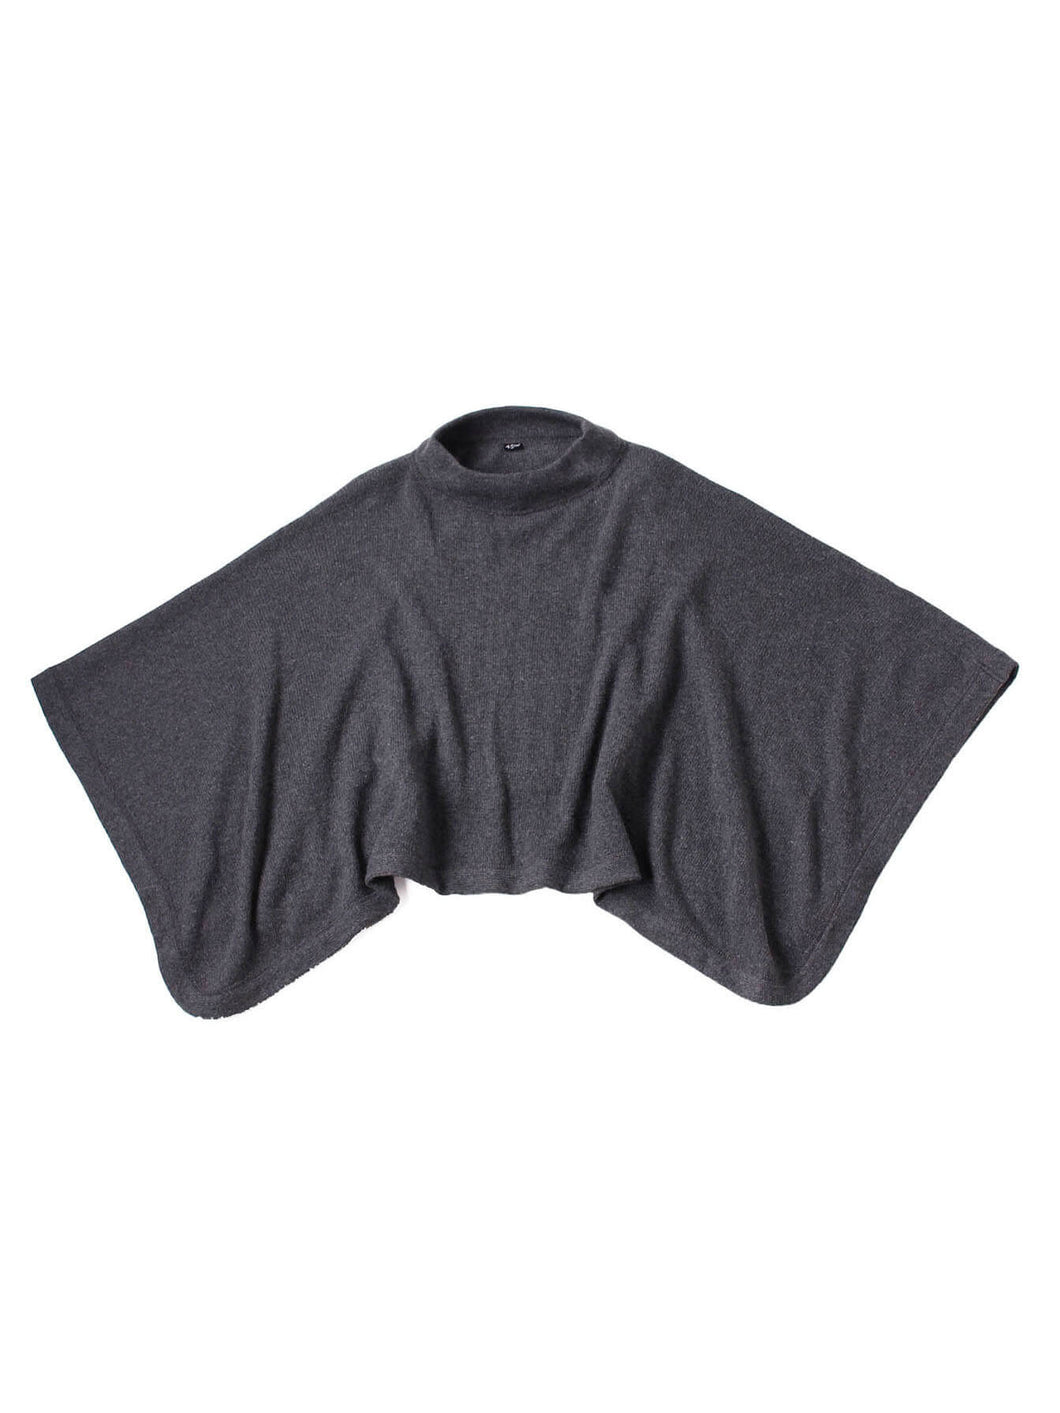 Eco Cashmere Mock Neck Poncho in grey